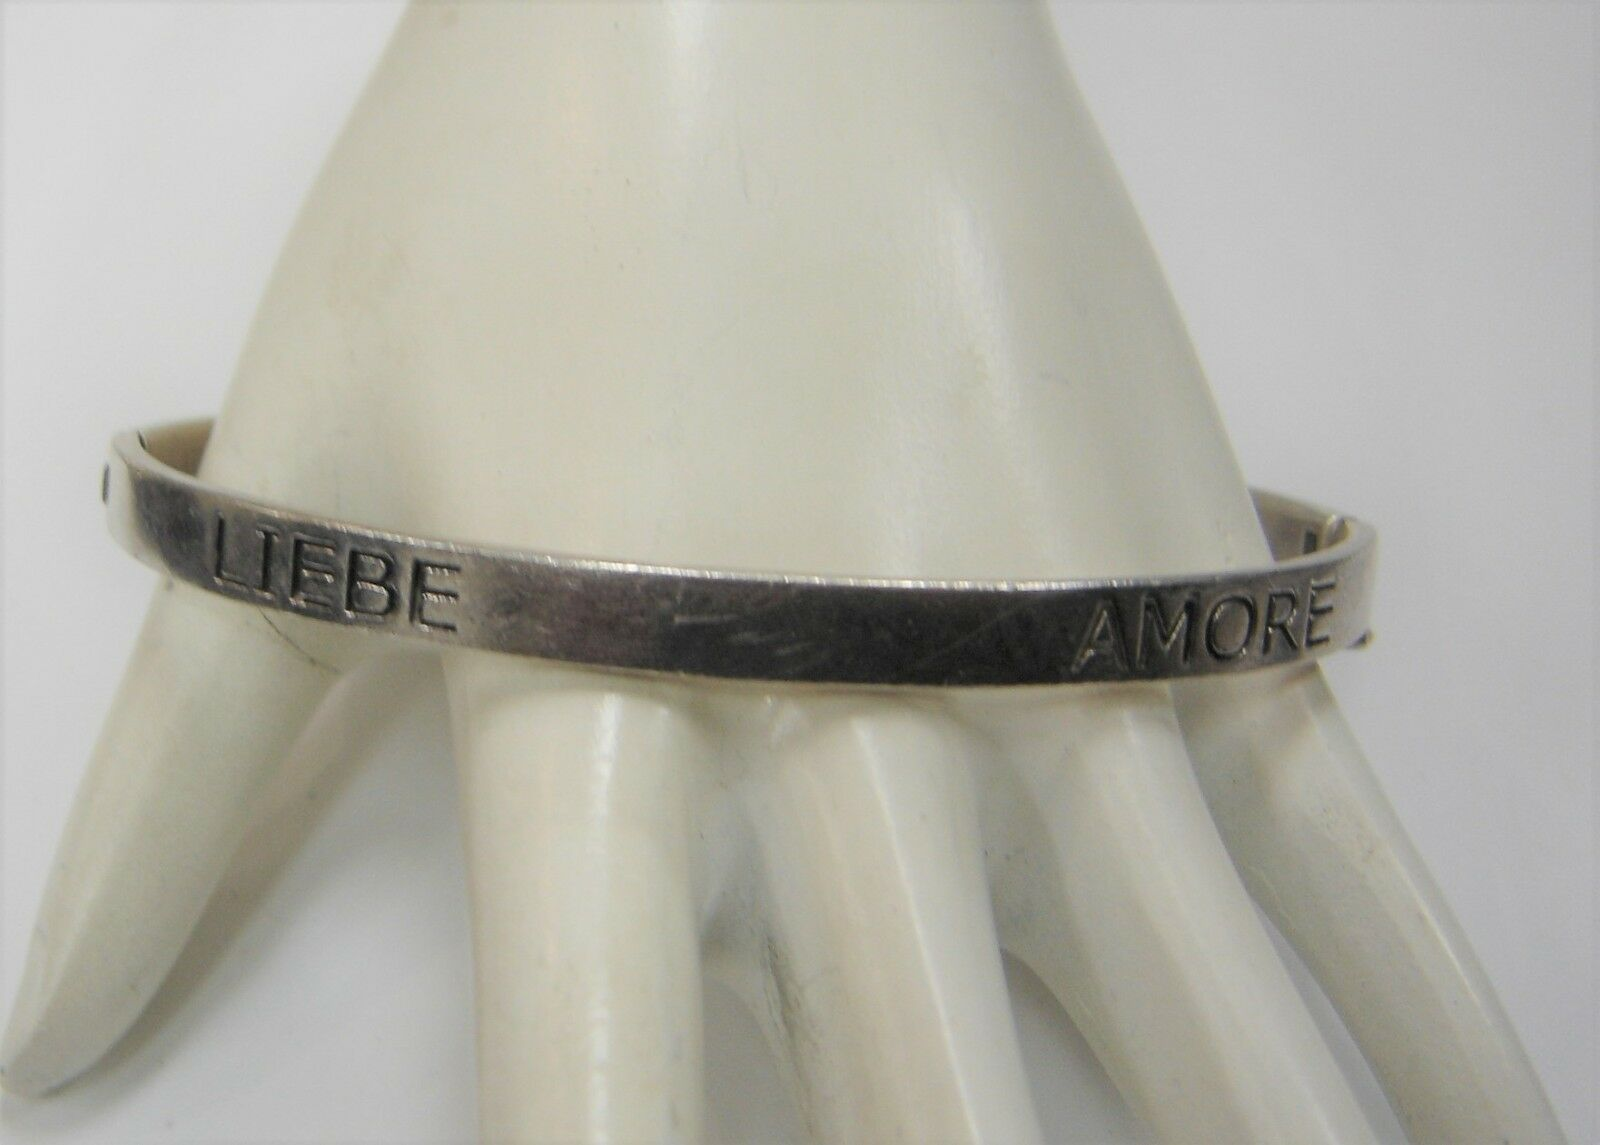 Carolee argentoo Sterling Bracciale Braccialetto Liebe Amore Love Amour Amour Amour Amor 472w 94e3f3